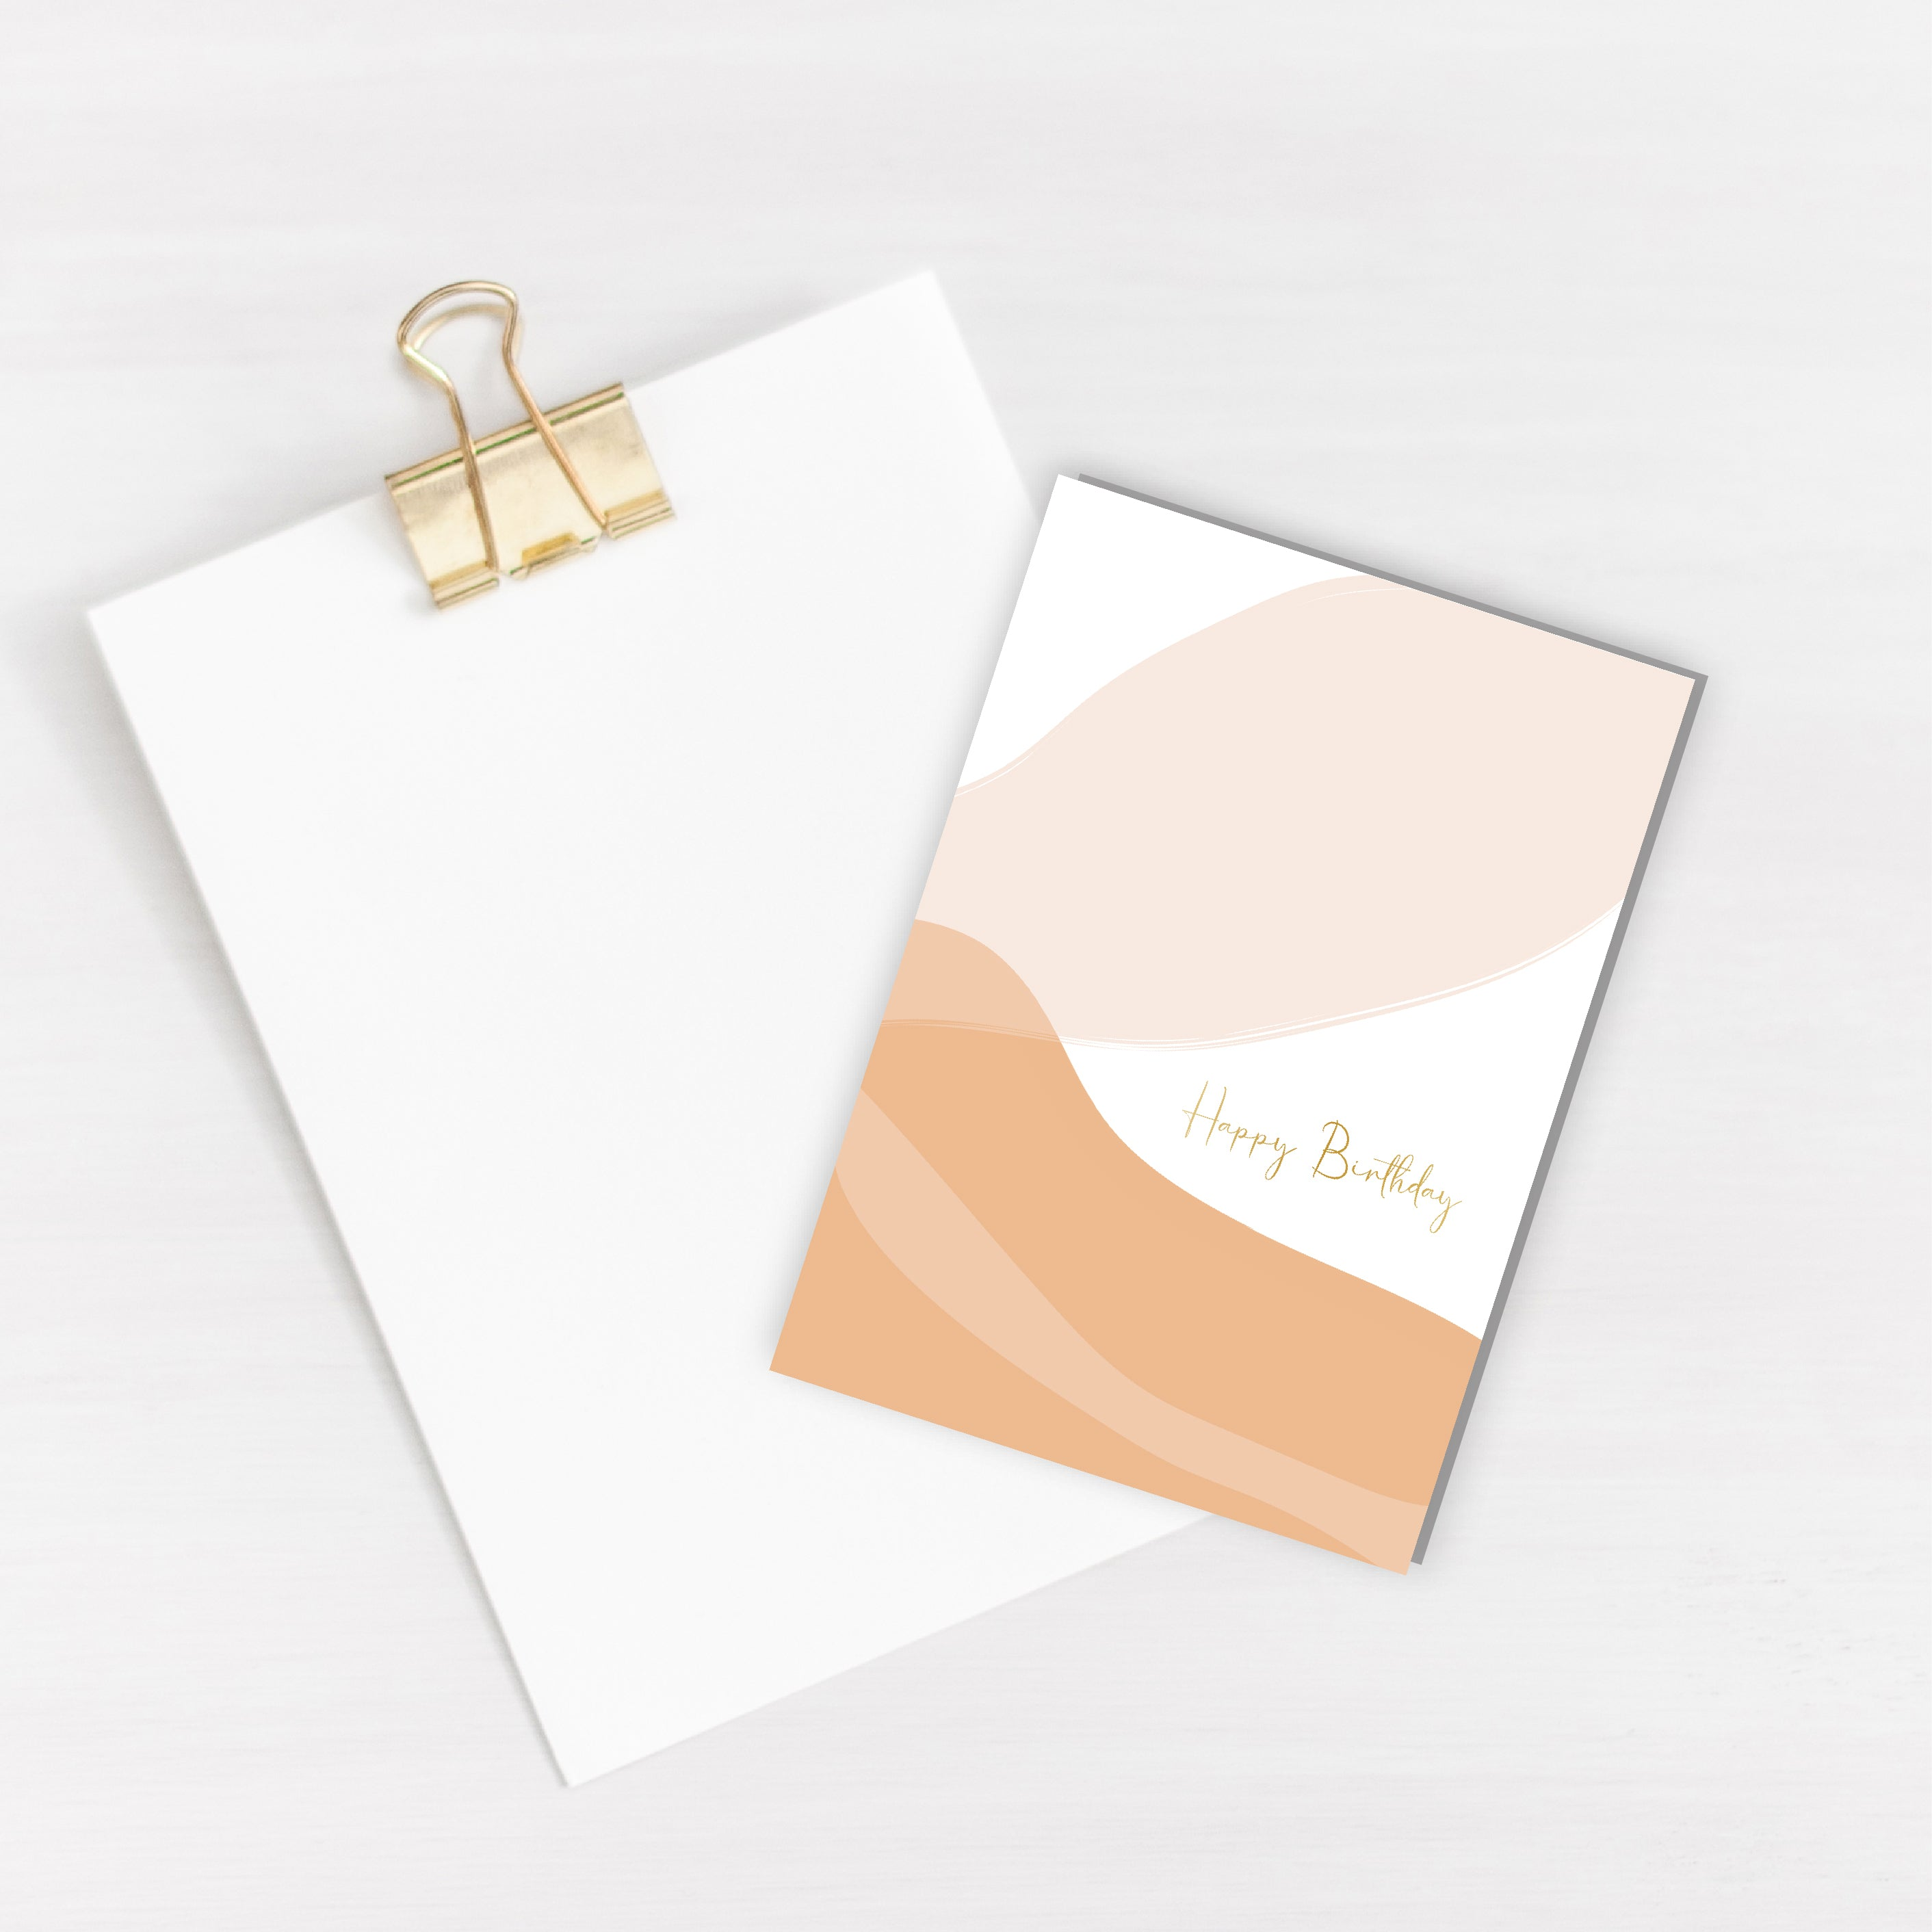 Happy Birthday Petal Gold Foiled Card